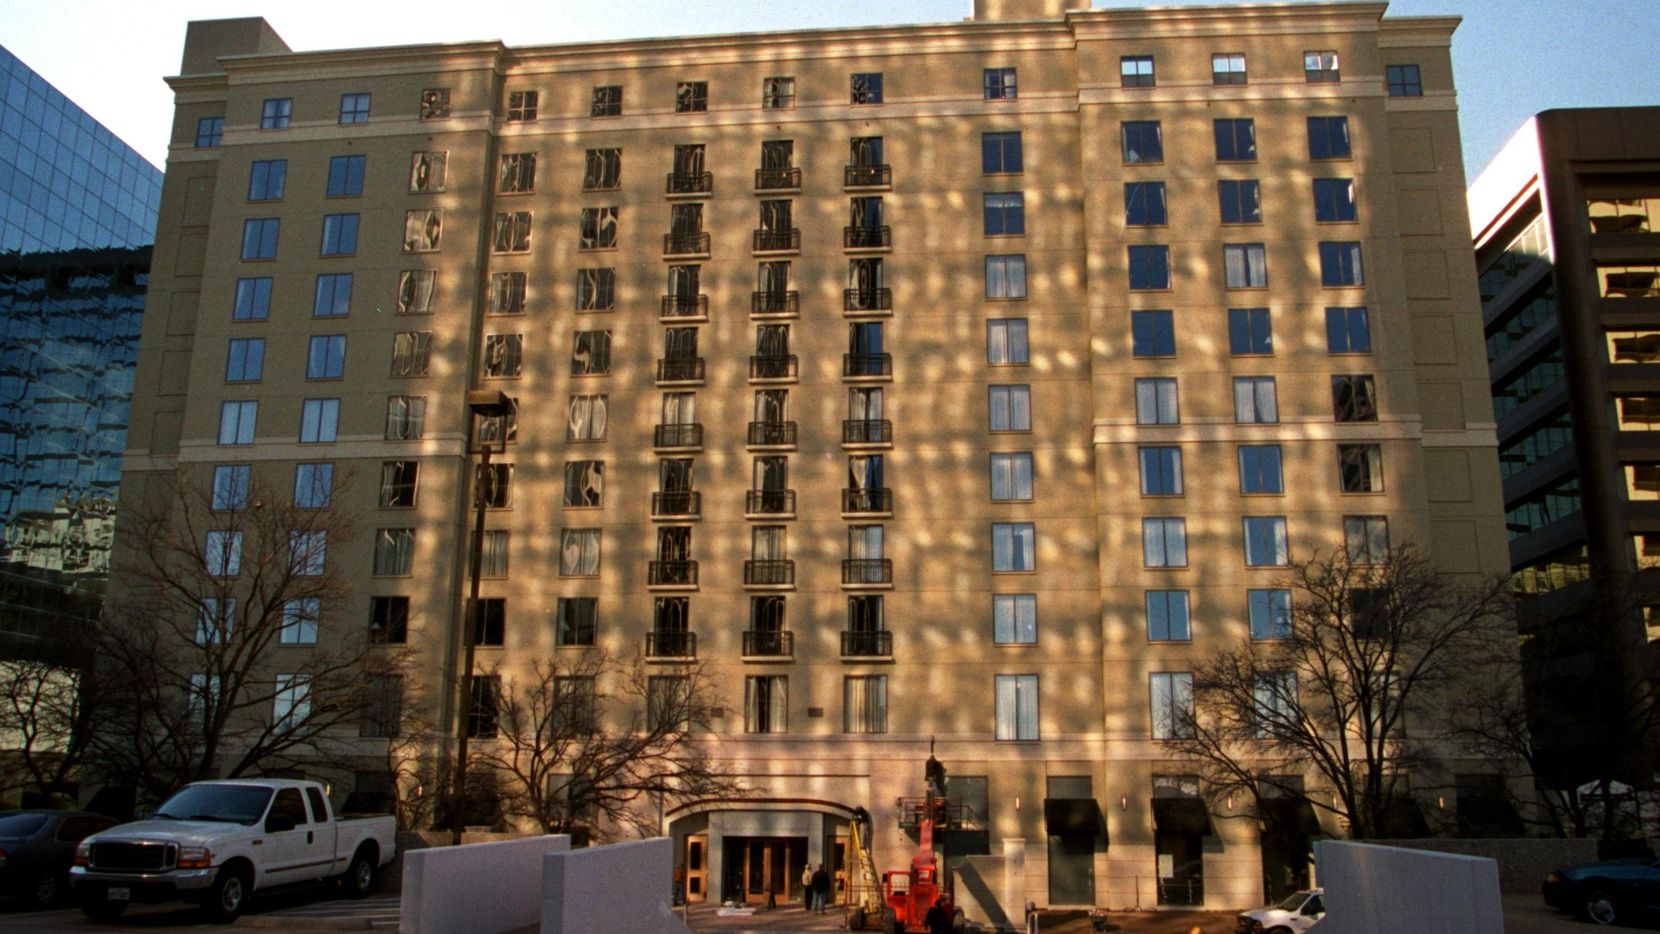 The Dallas/Park Cities Hilton Hotel on Luther Lane. is getting a makeover.